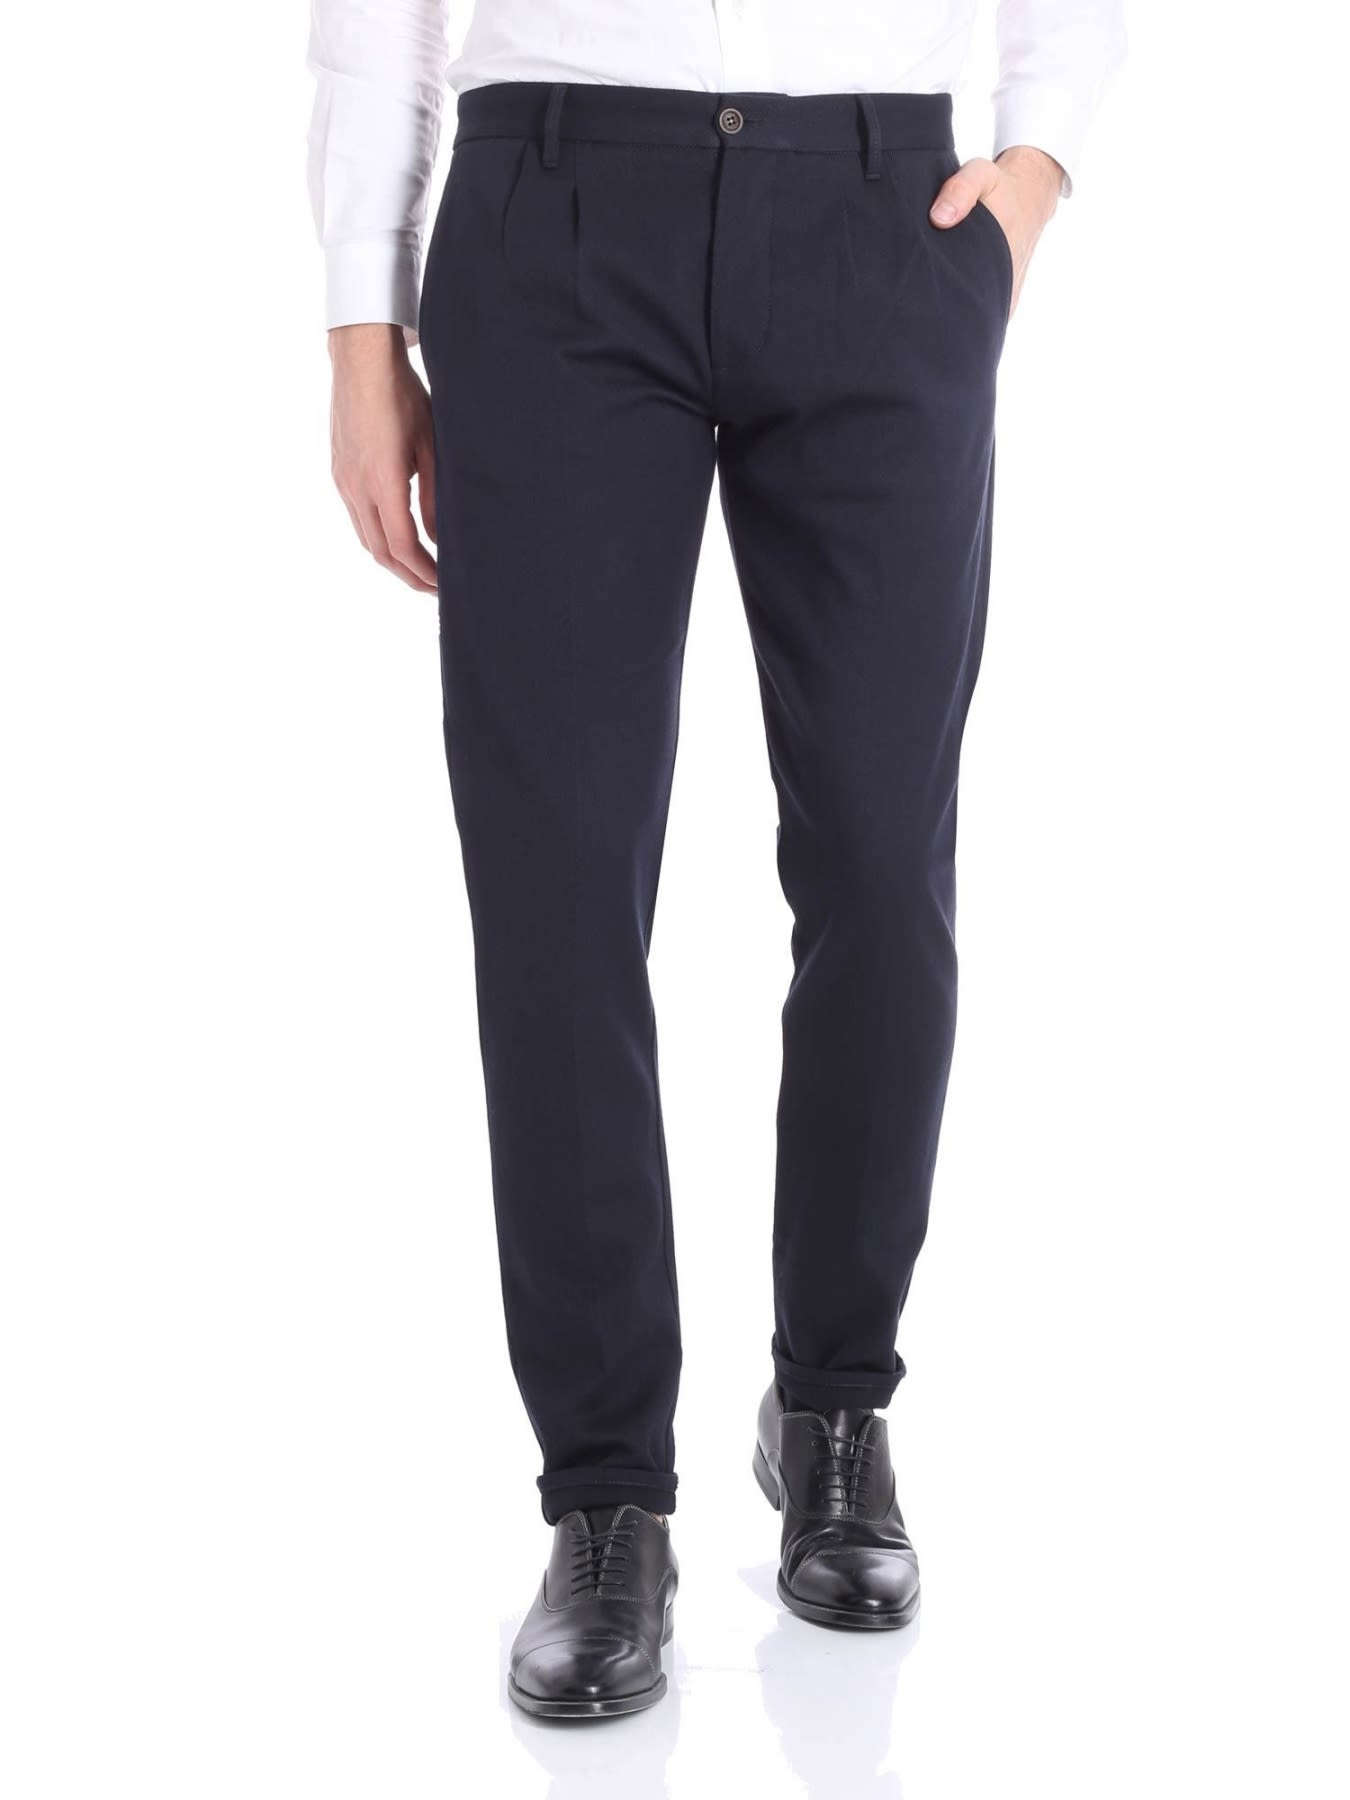 FORTELA TROUSERS VIRGIN WOOL AND COTTON